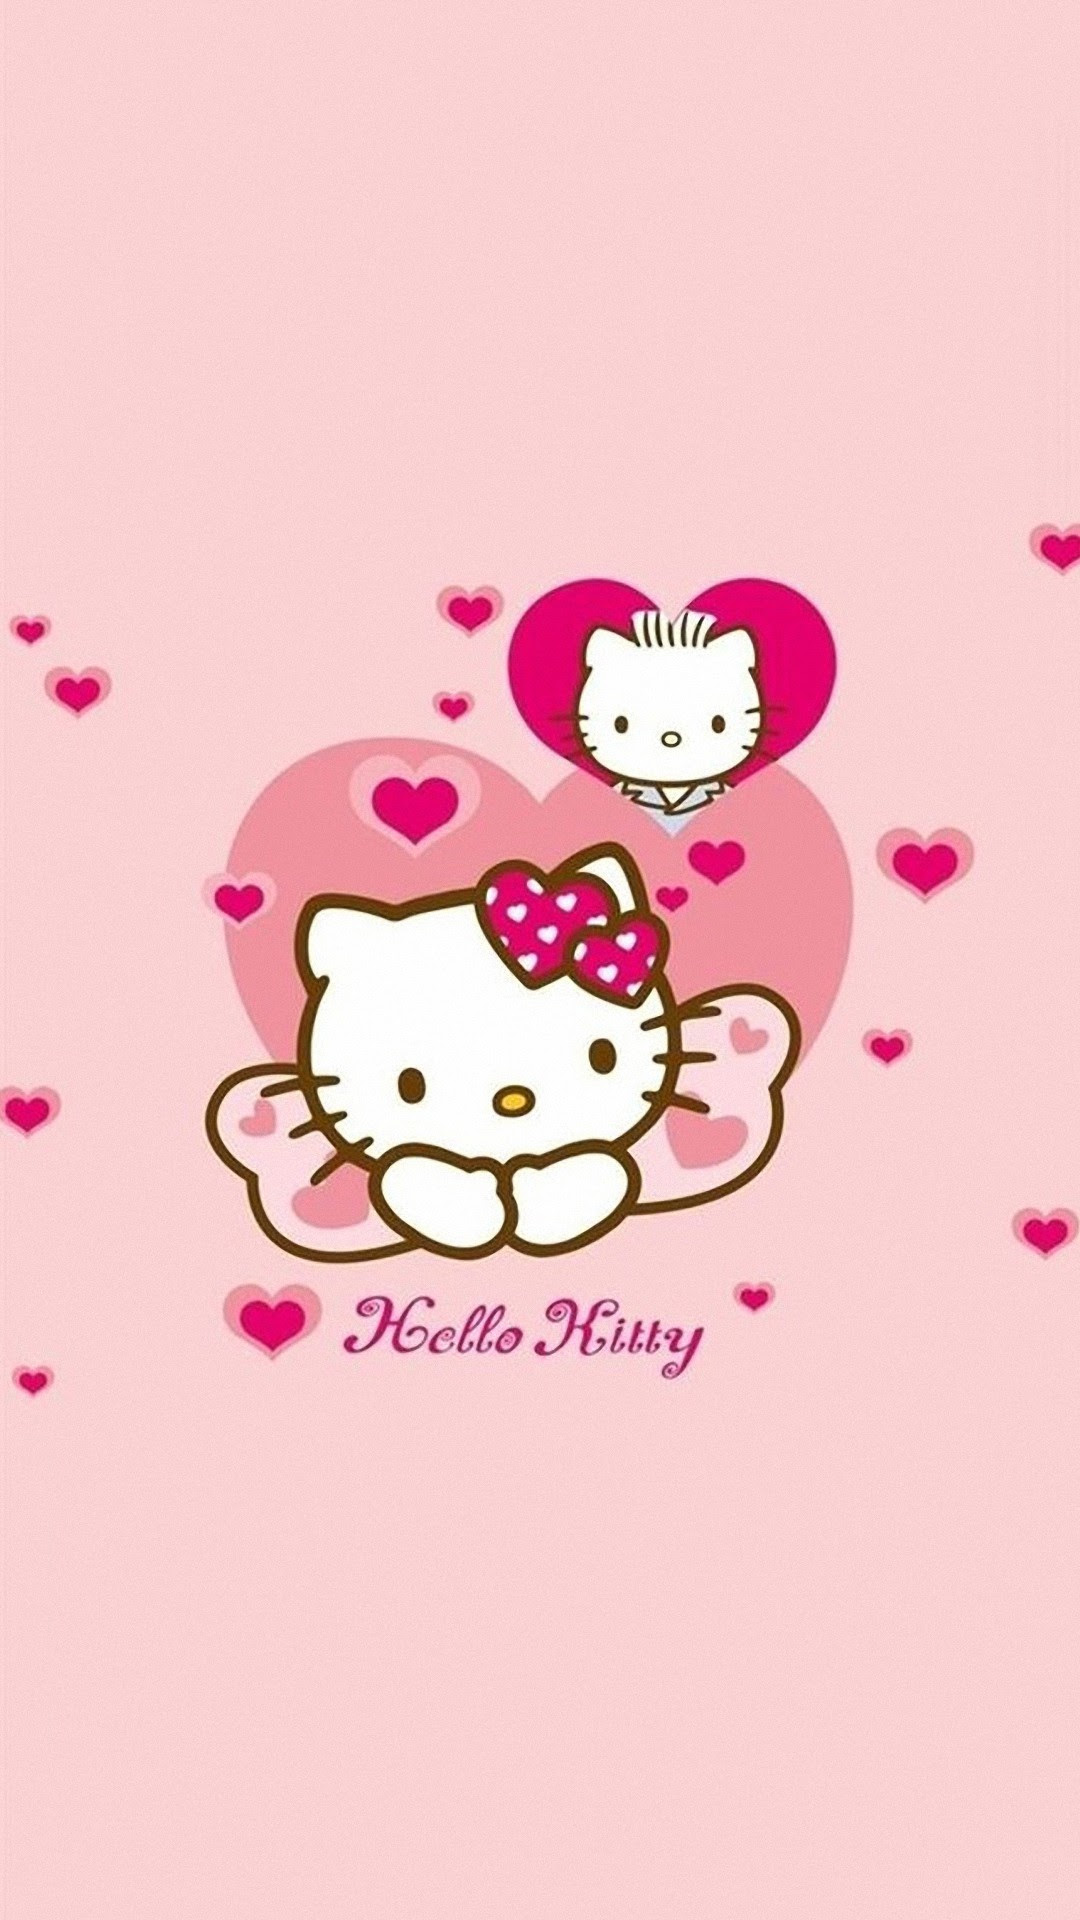 Download Wallpaper Hello Kitty Unicorn HD